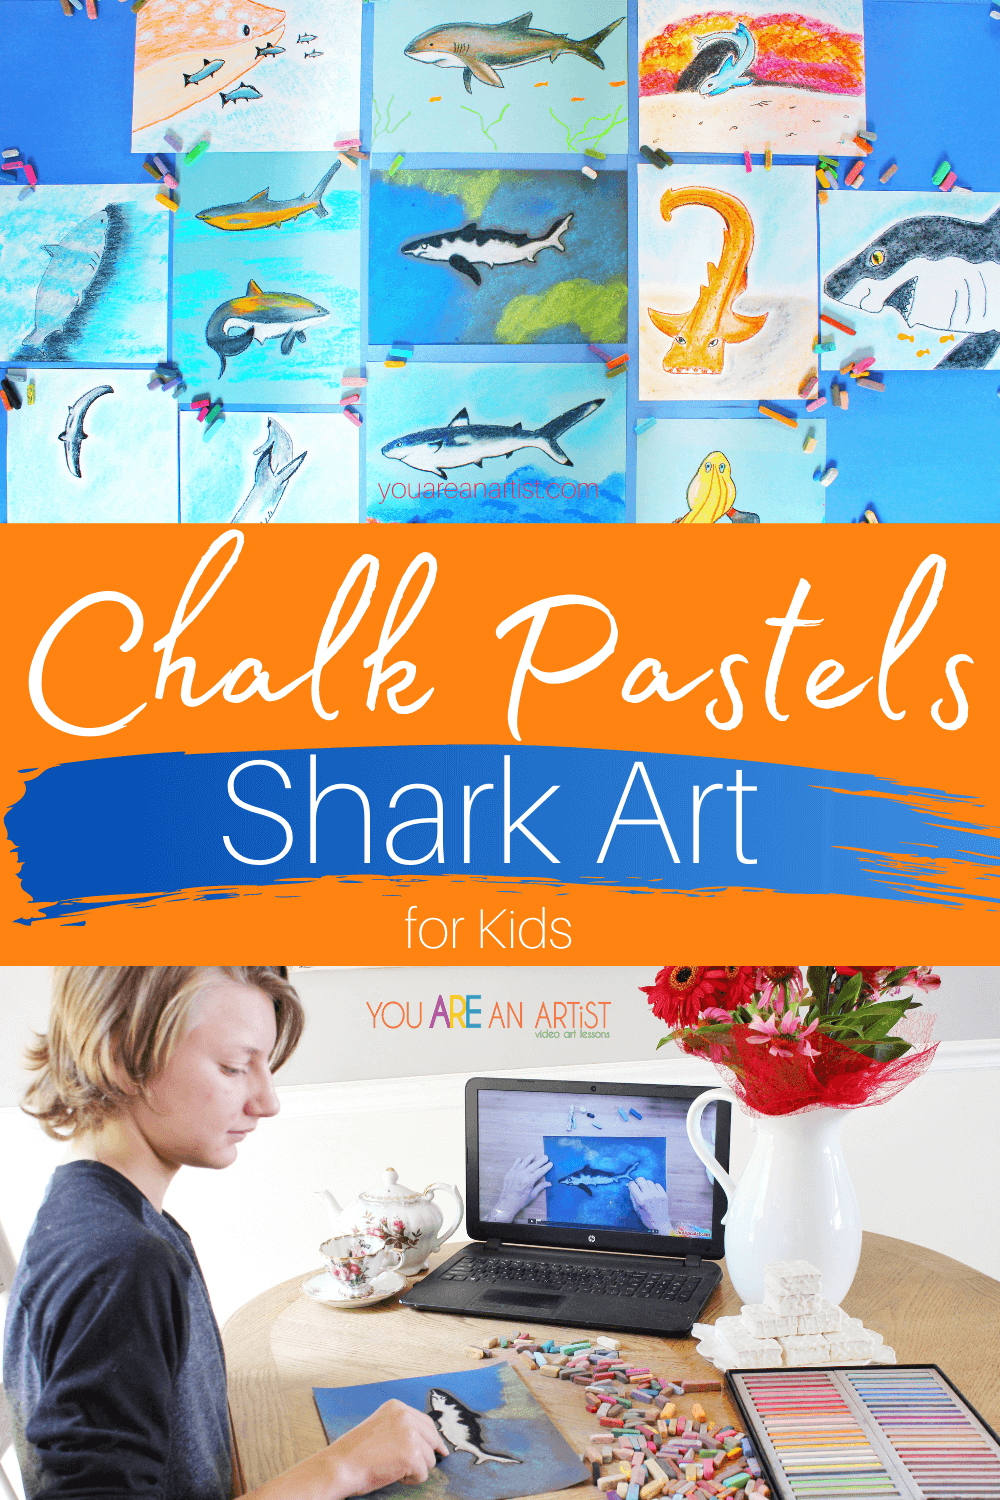 Chalk Pastels Shark Art for Kids: Do your kids love sharks? Are you getting ready for shark week? Then let Nana take you under the sea with chalk pastels shark art for kids! These easy lessons will teach you and your child how to draw some of the most interesting sharks using chalk pastels. #YouAREAnArtist #chalkpastels #sharkweek #chalkpastelssharkart #sharkart #sharkartforkids #chalkpastelssharkartforkids #sharkweek #sharks